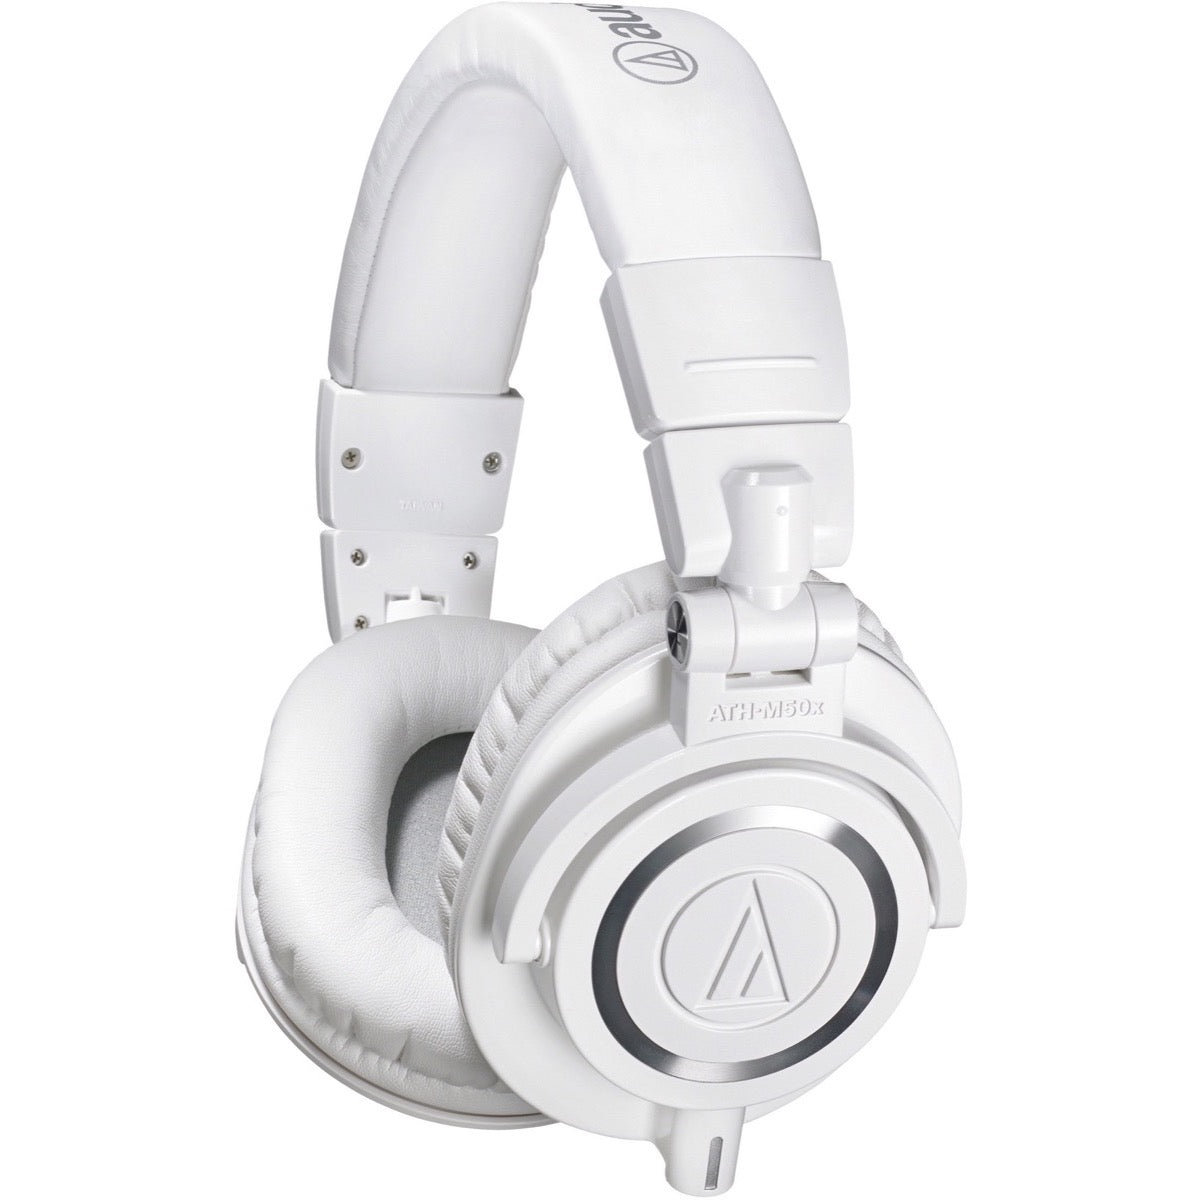 Audio-Technica ATH-M50x Headphones, White